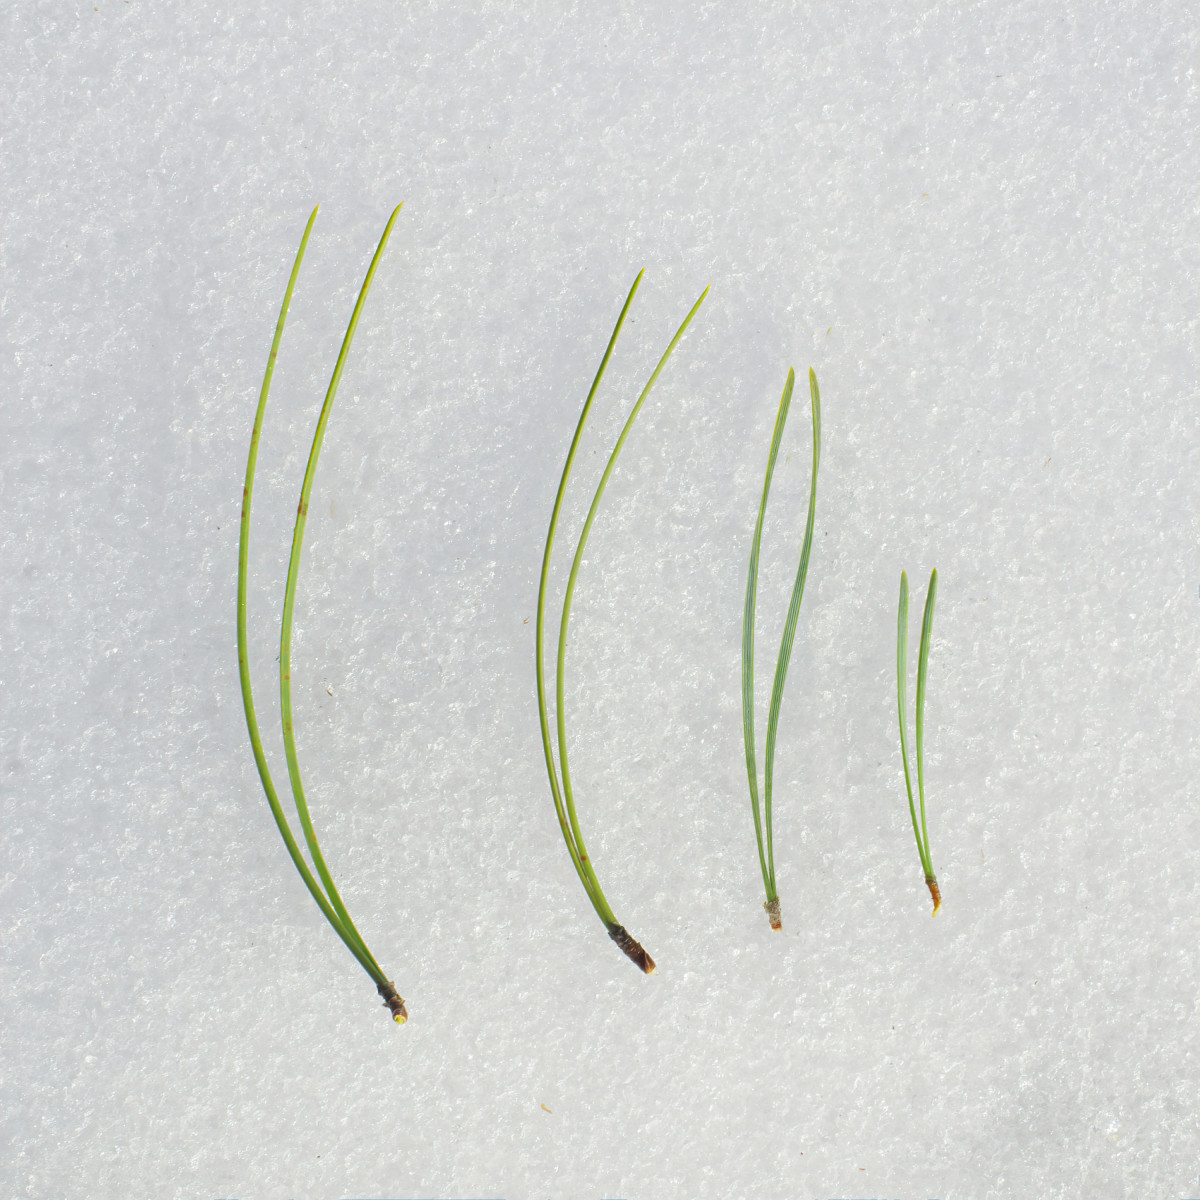 Left to Right:  RED PINE, AUSTRIAN PINE, SCOTS PINE, JACK PINE NEEDLES